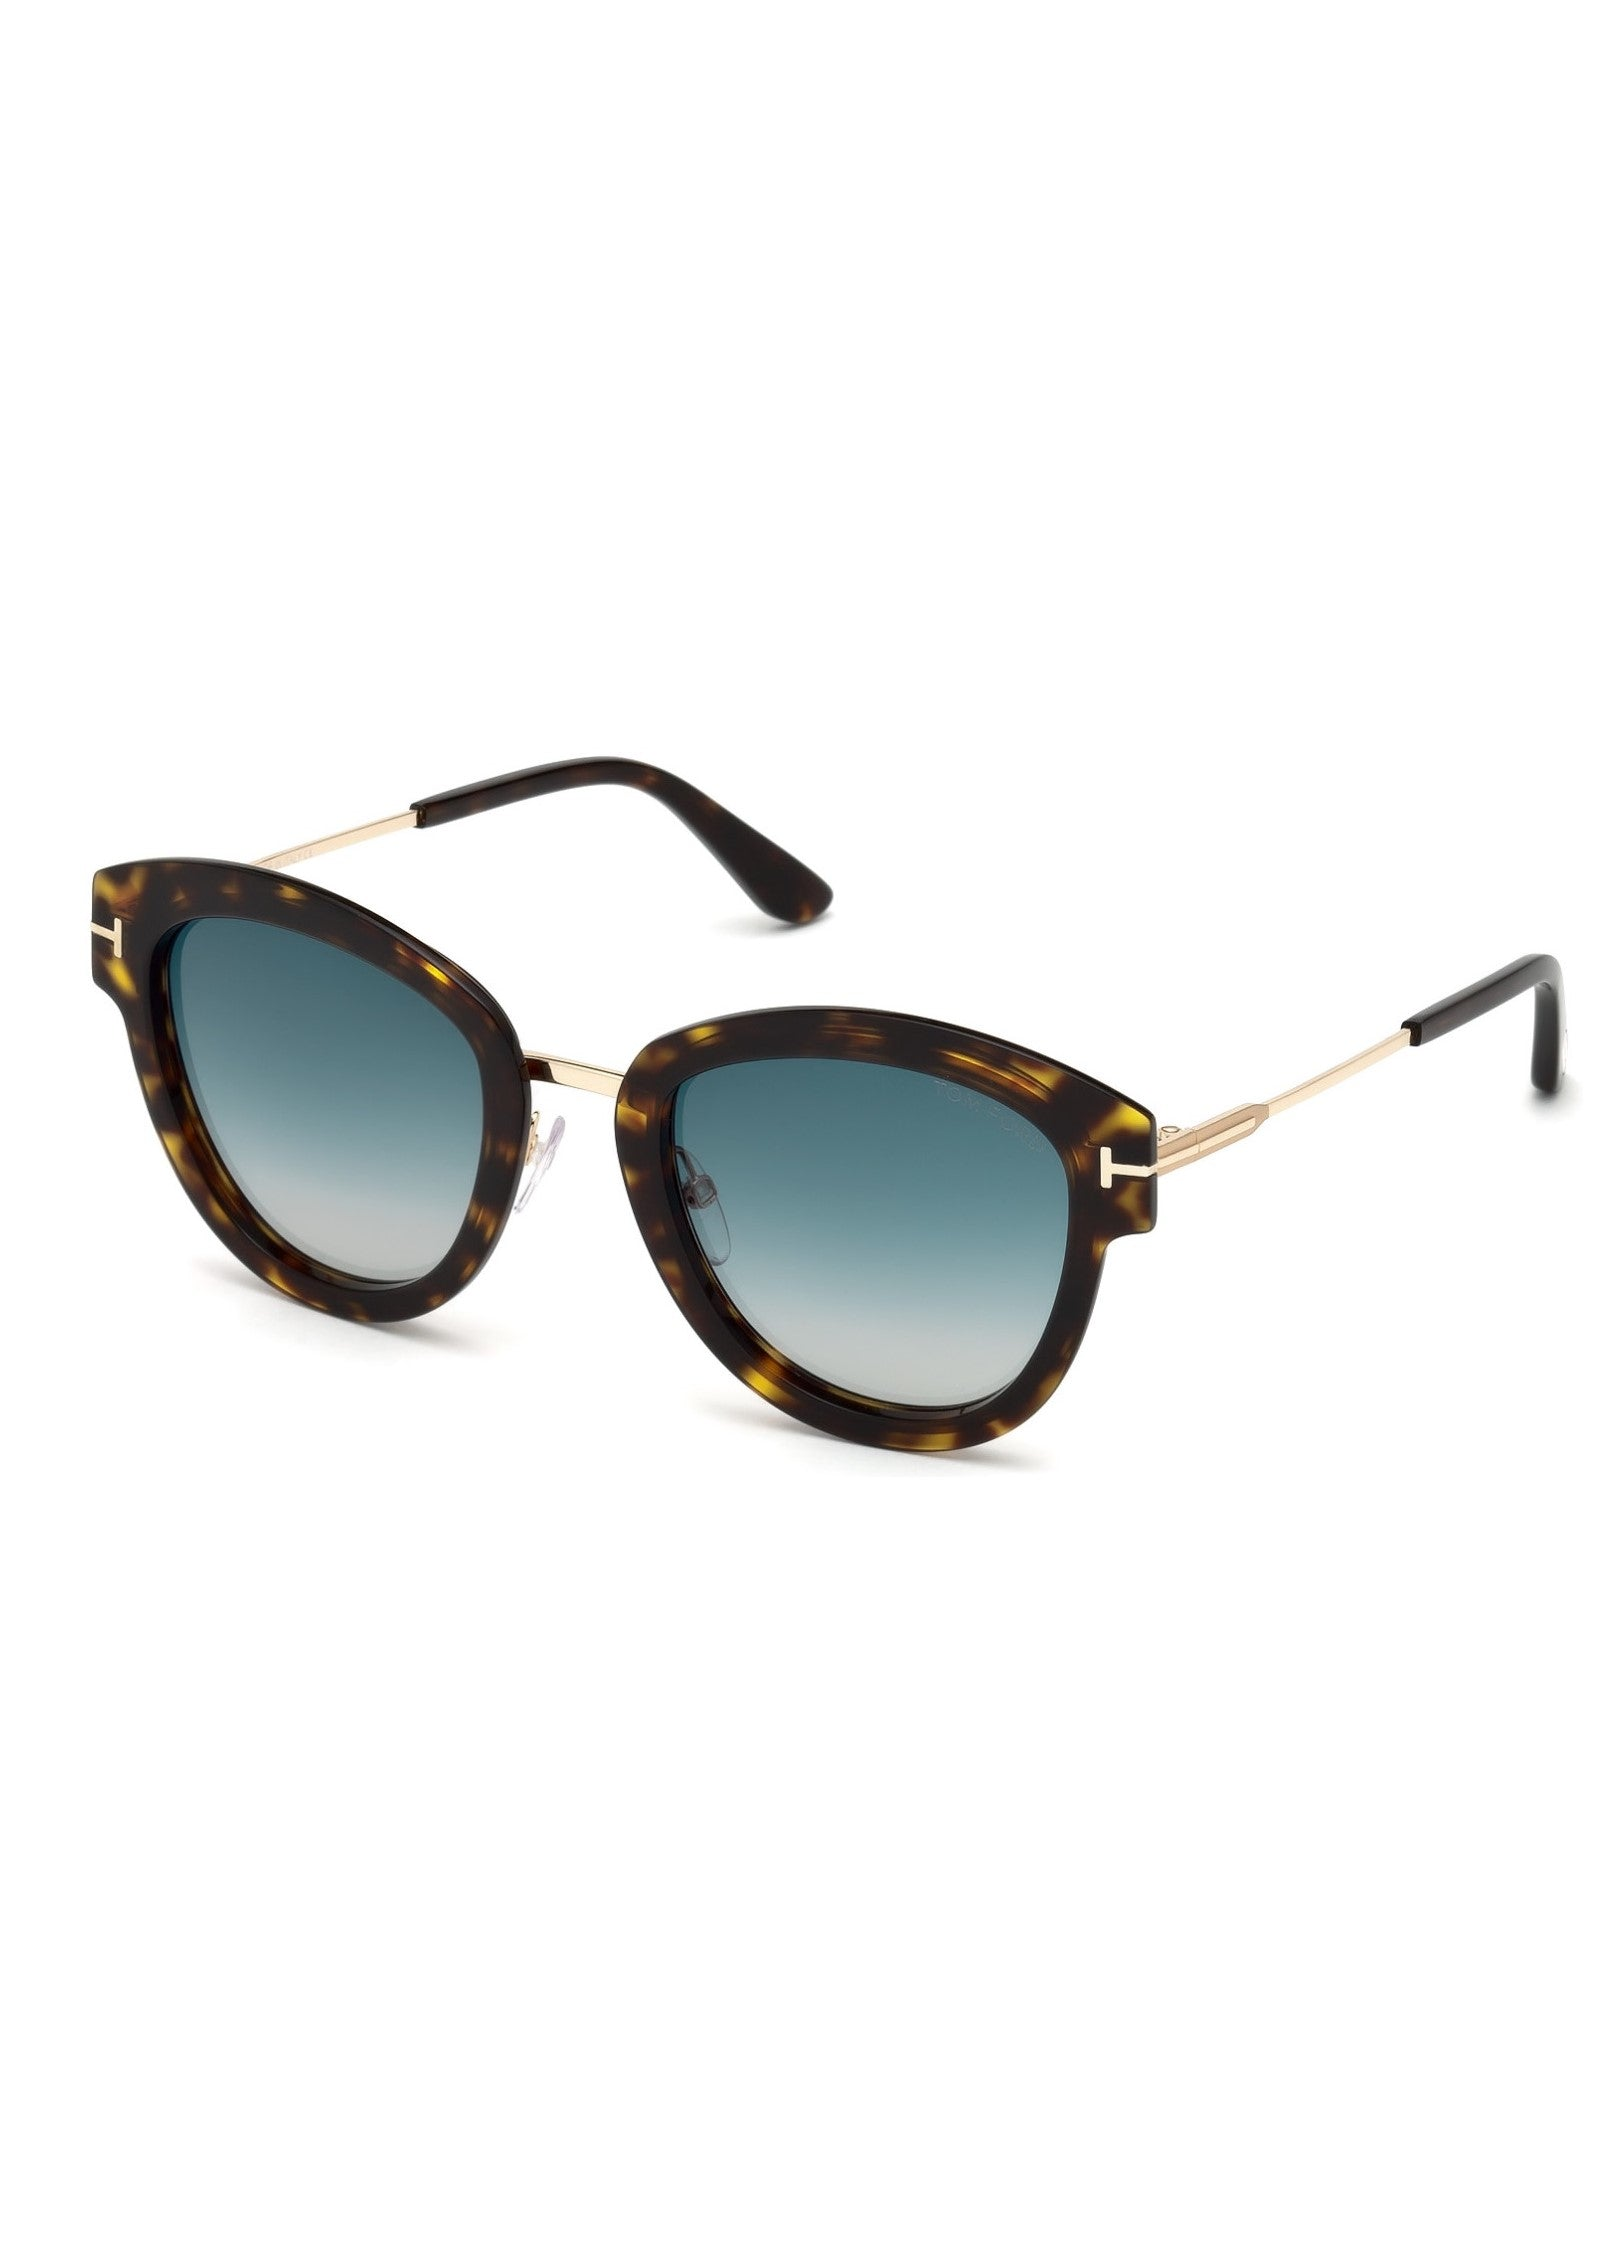 Tom Ford Mia sunglasses in colored havanna